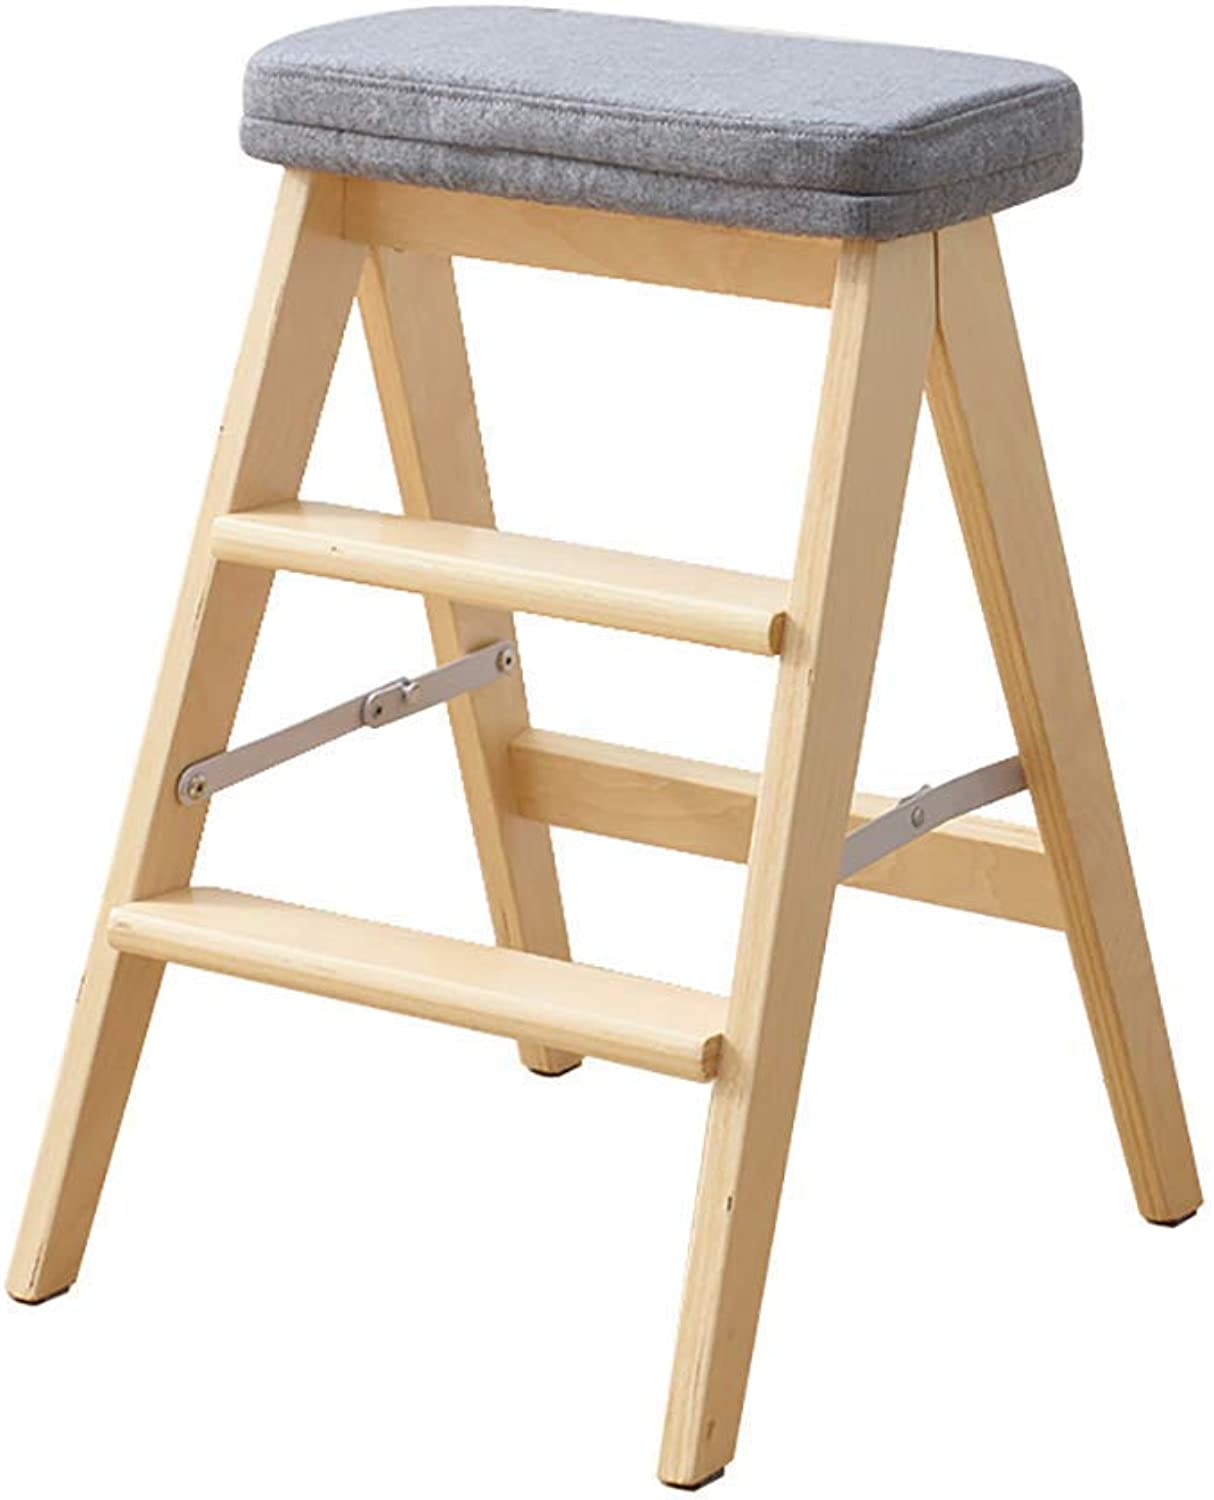 D-Z Chair Stool Folding Ladder Step Stool Portable Ladder Stool Multipurpose Solid Wood Kitchen Stool Household Climbing Wooden Stool, Stool 2, a